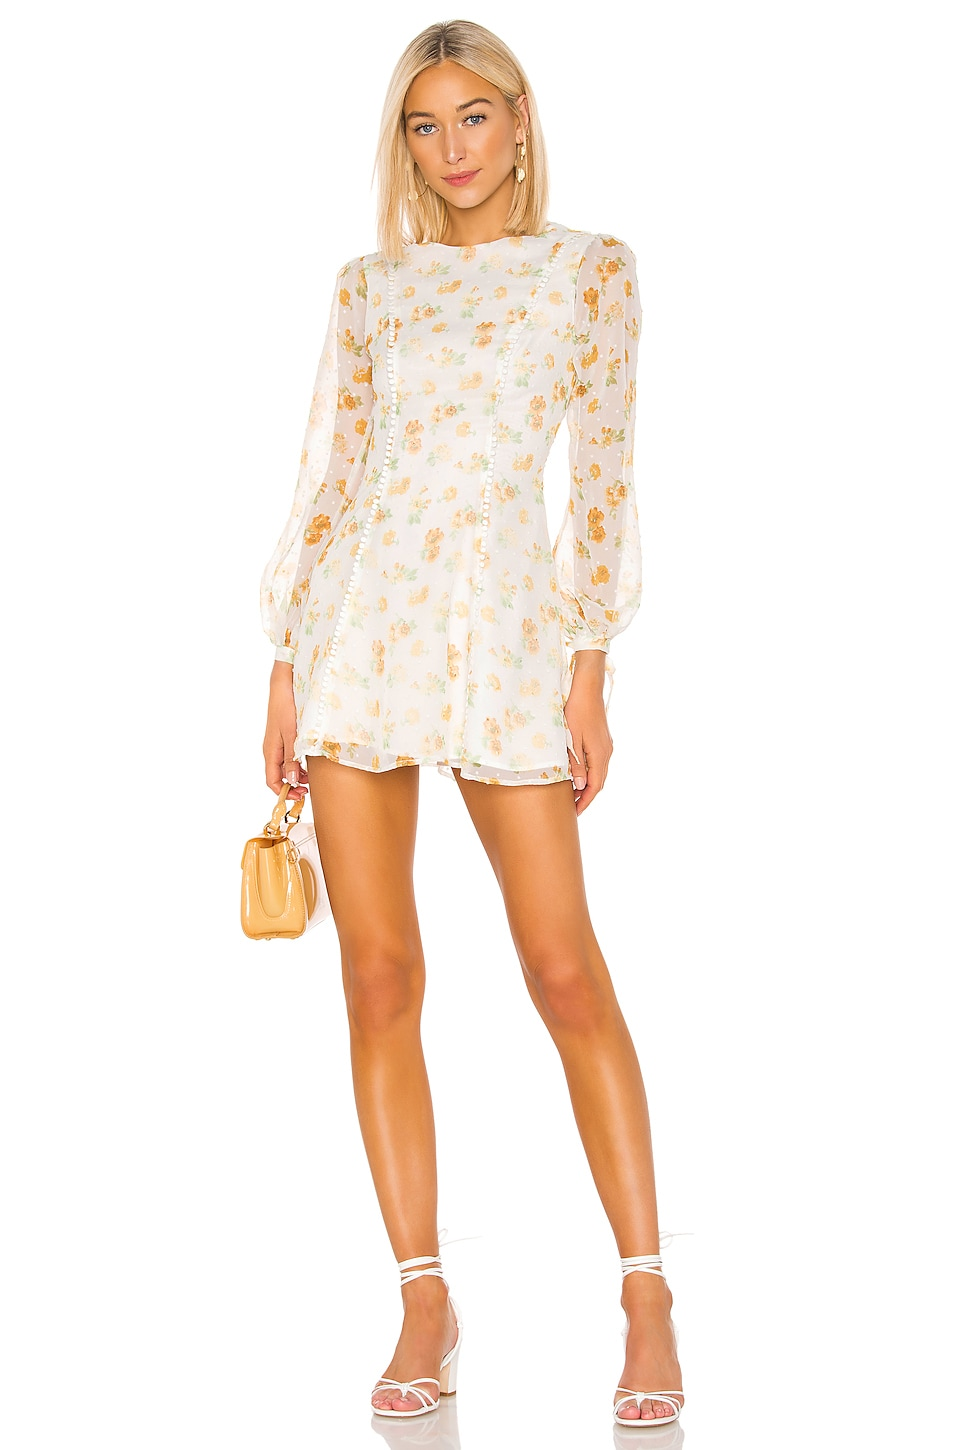 MAJORELLE Aspen Mini Dress in Misty Yellow